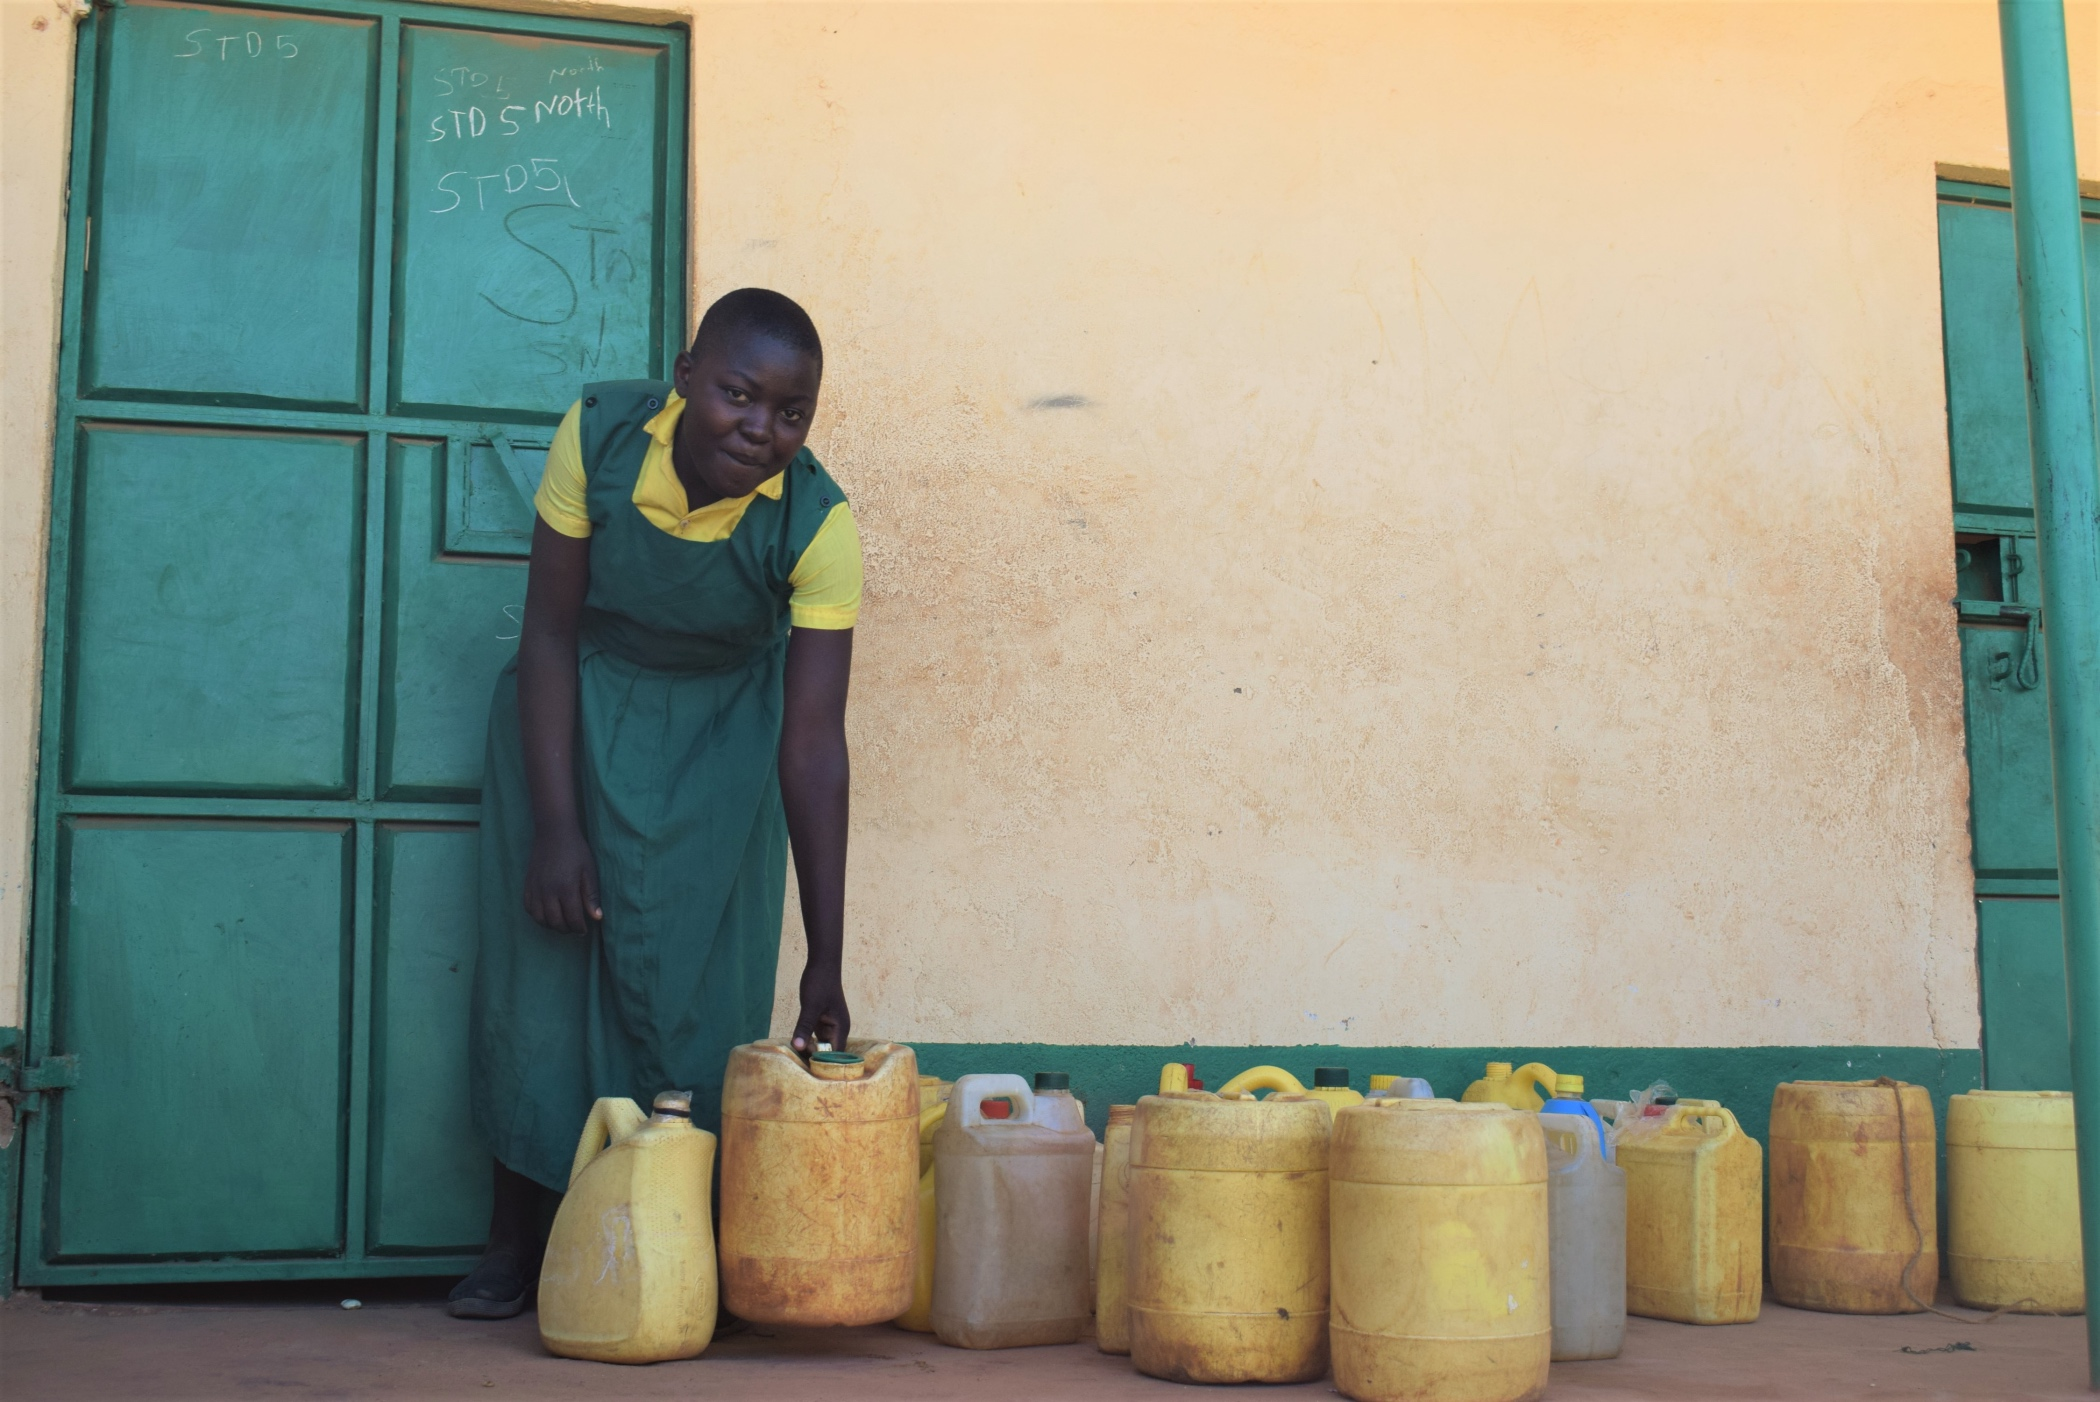 The Water Project : kenya19237-student-fetches-water-from-containers-in-front-of-classroom